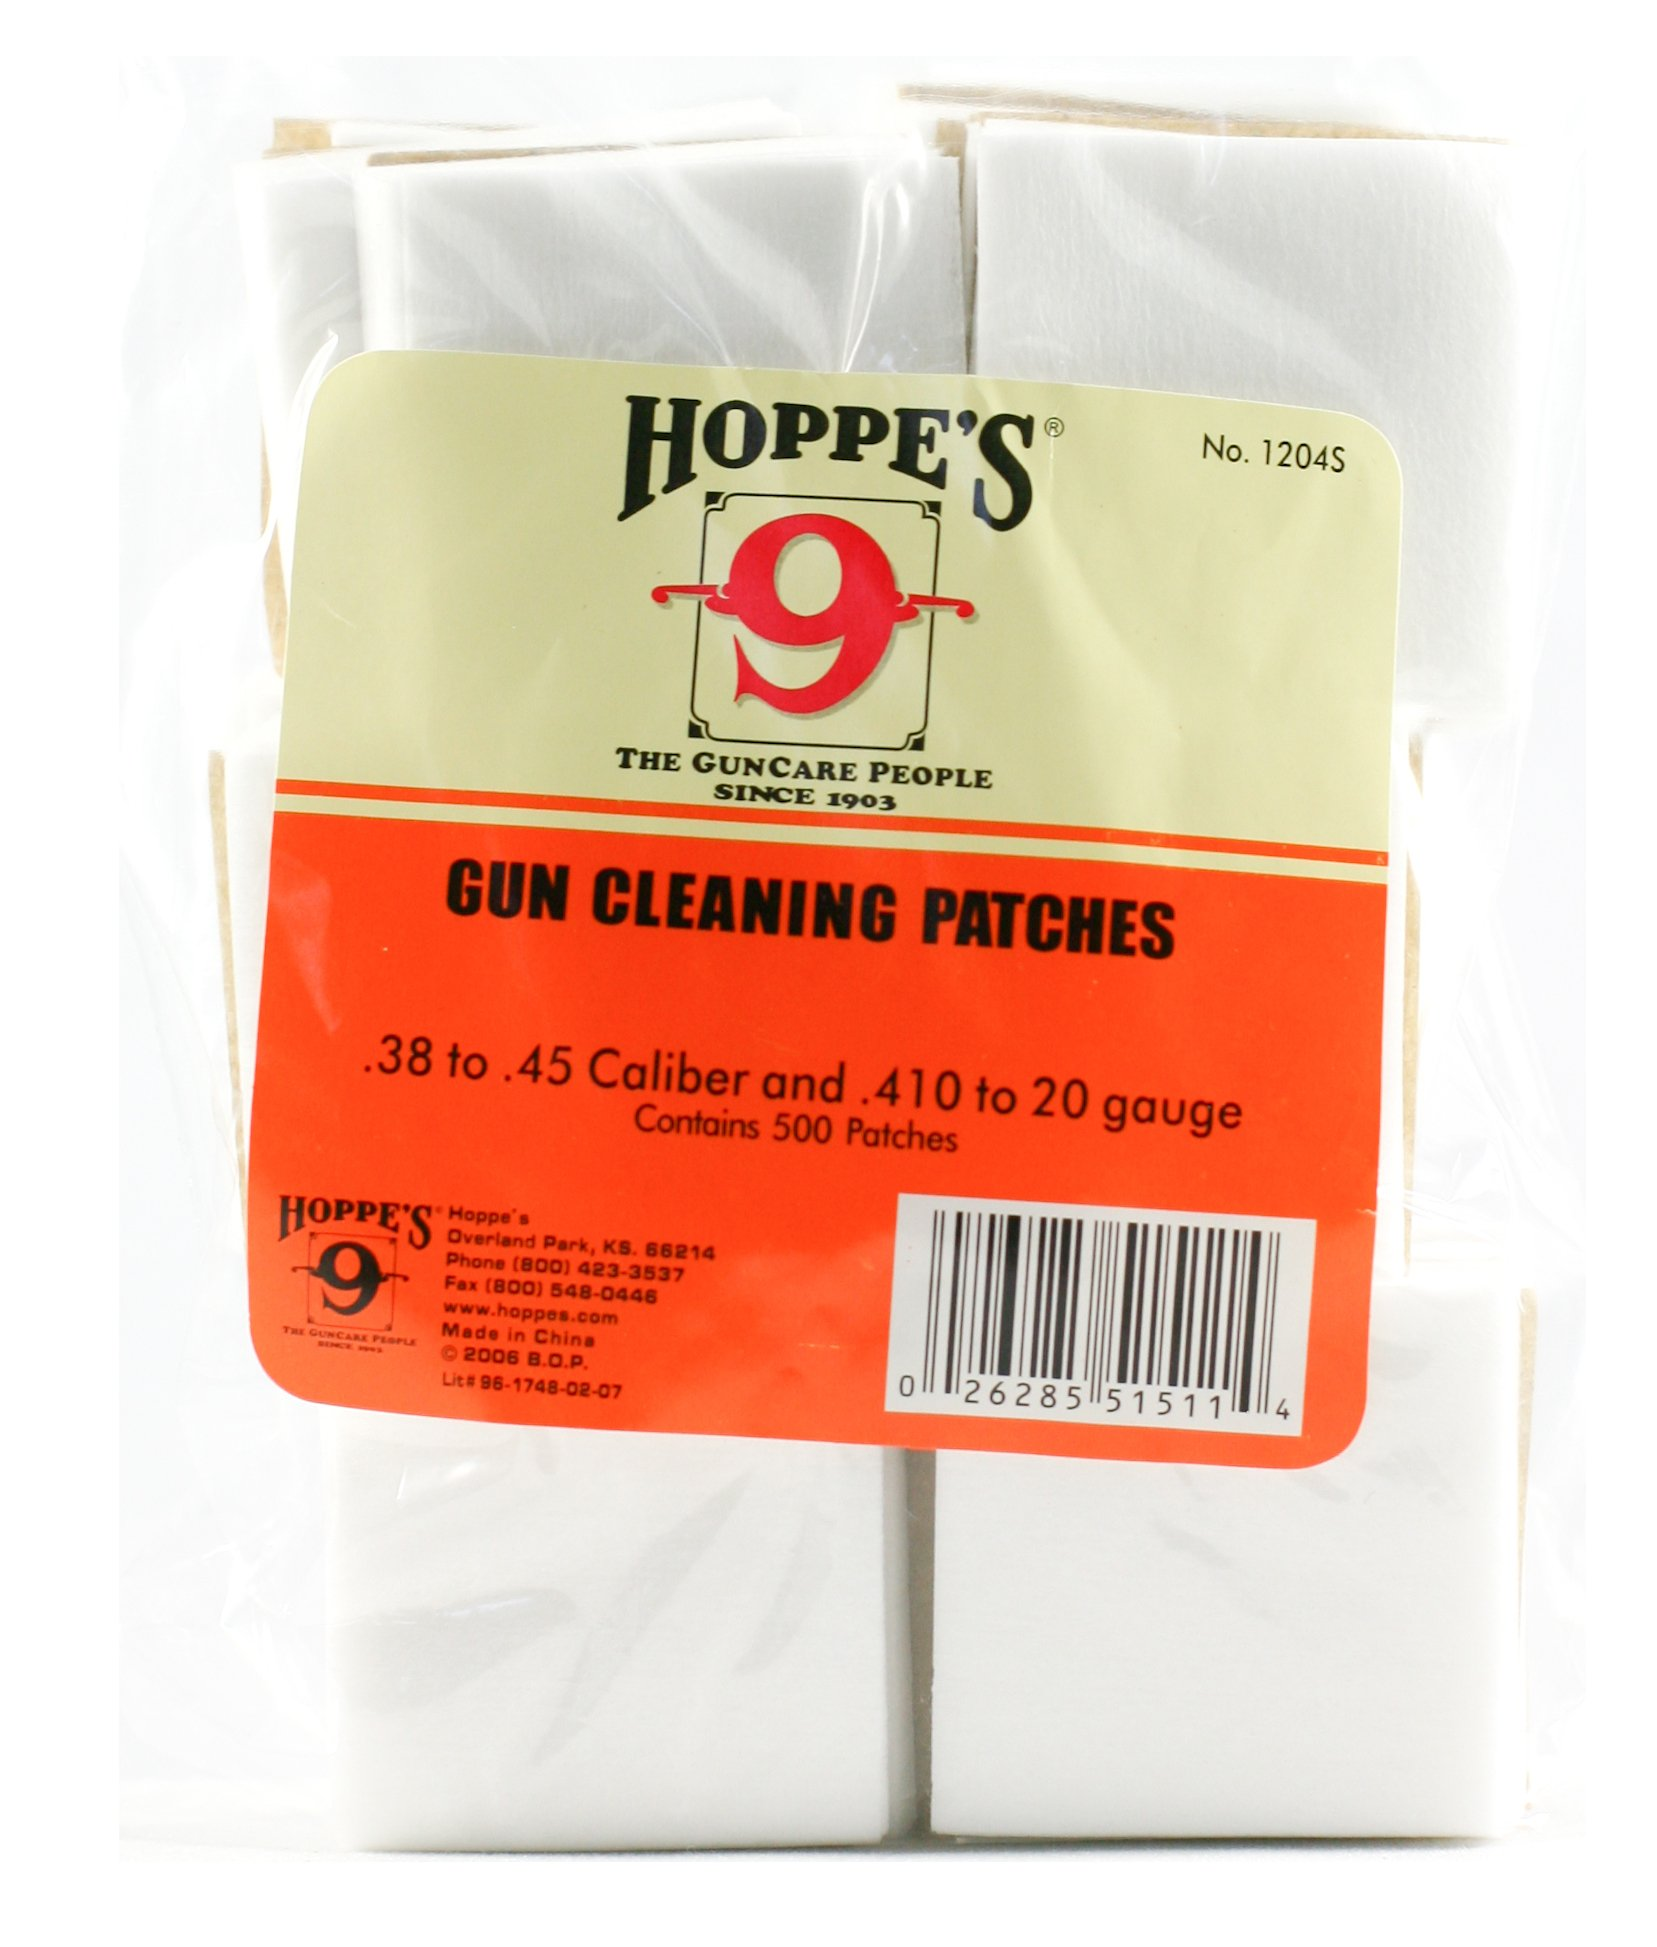 Hoppe's No. 9 Gun Cleaning Patch .38-.45 Caliber/.410-20-Gauge (500 Pack) 2